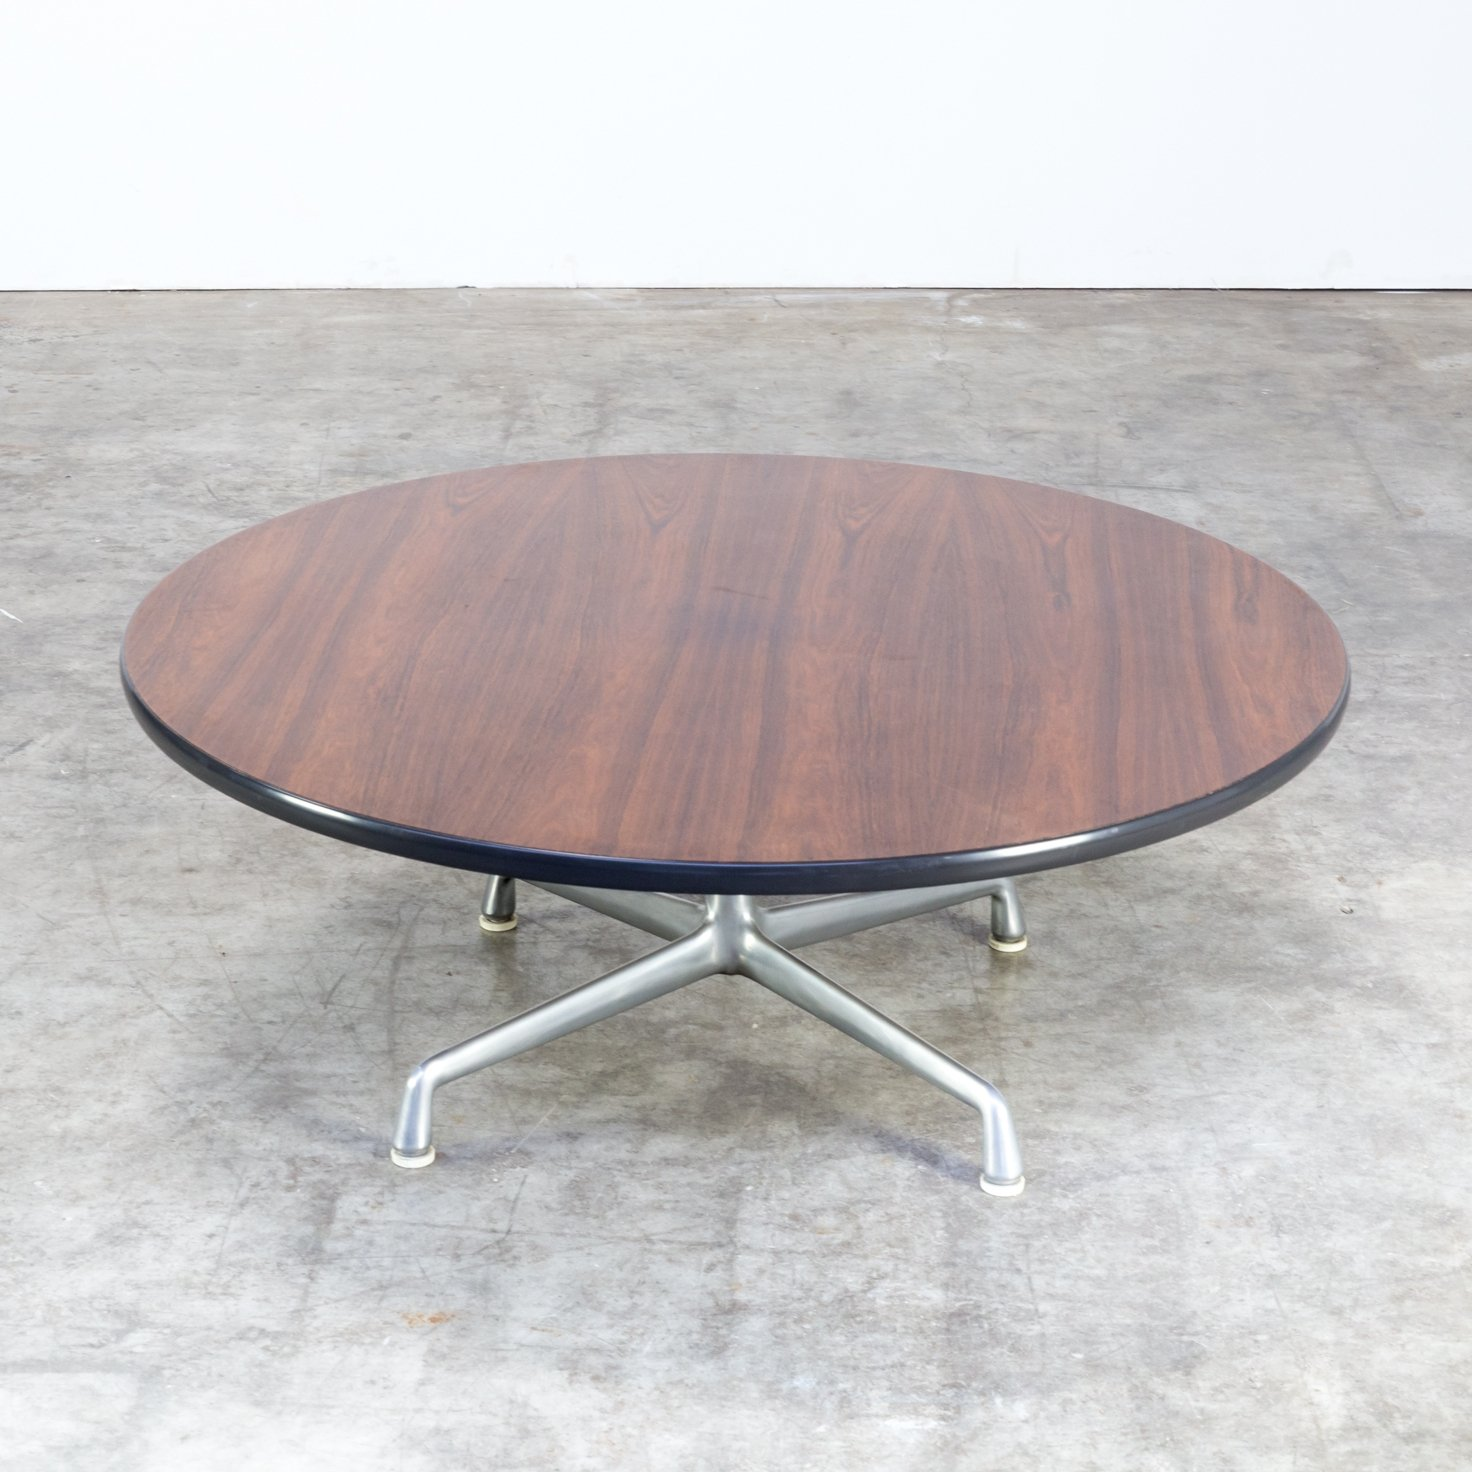 60s herman miller round coffee table 78151